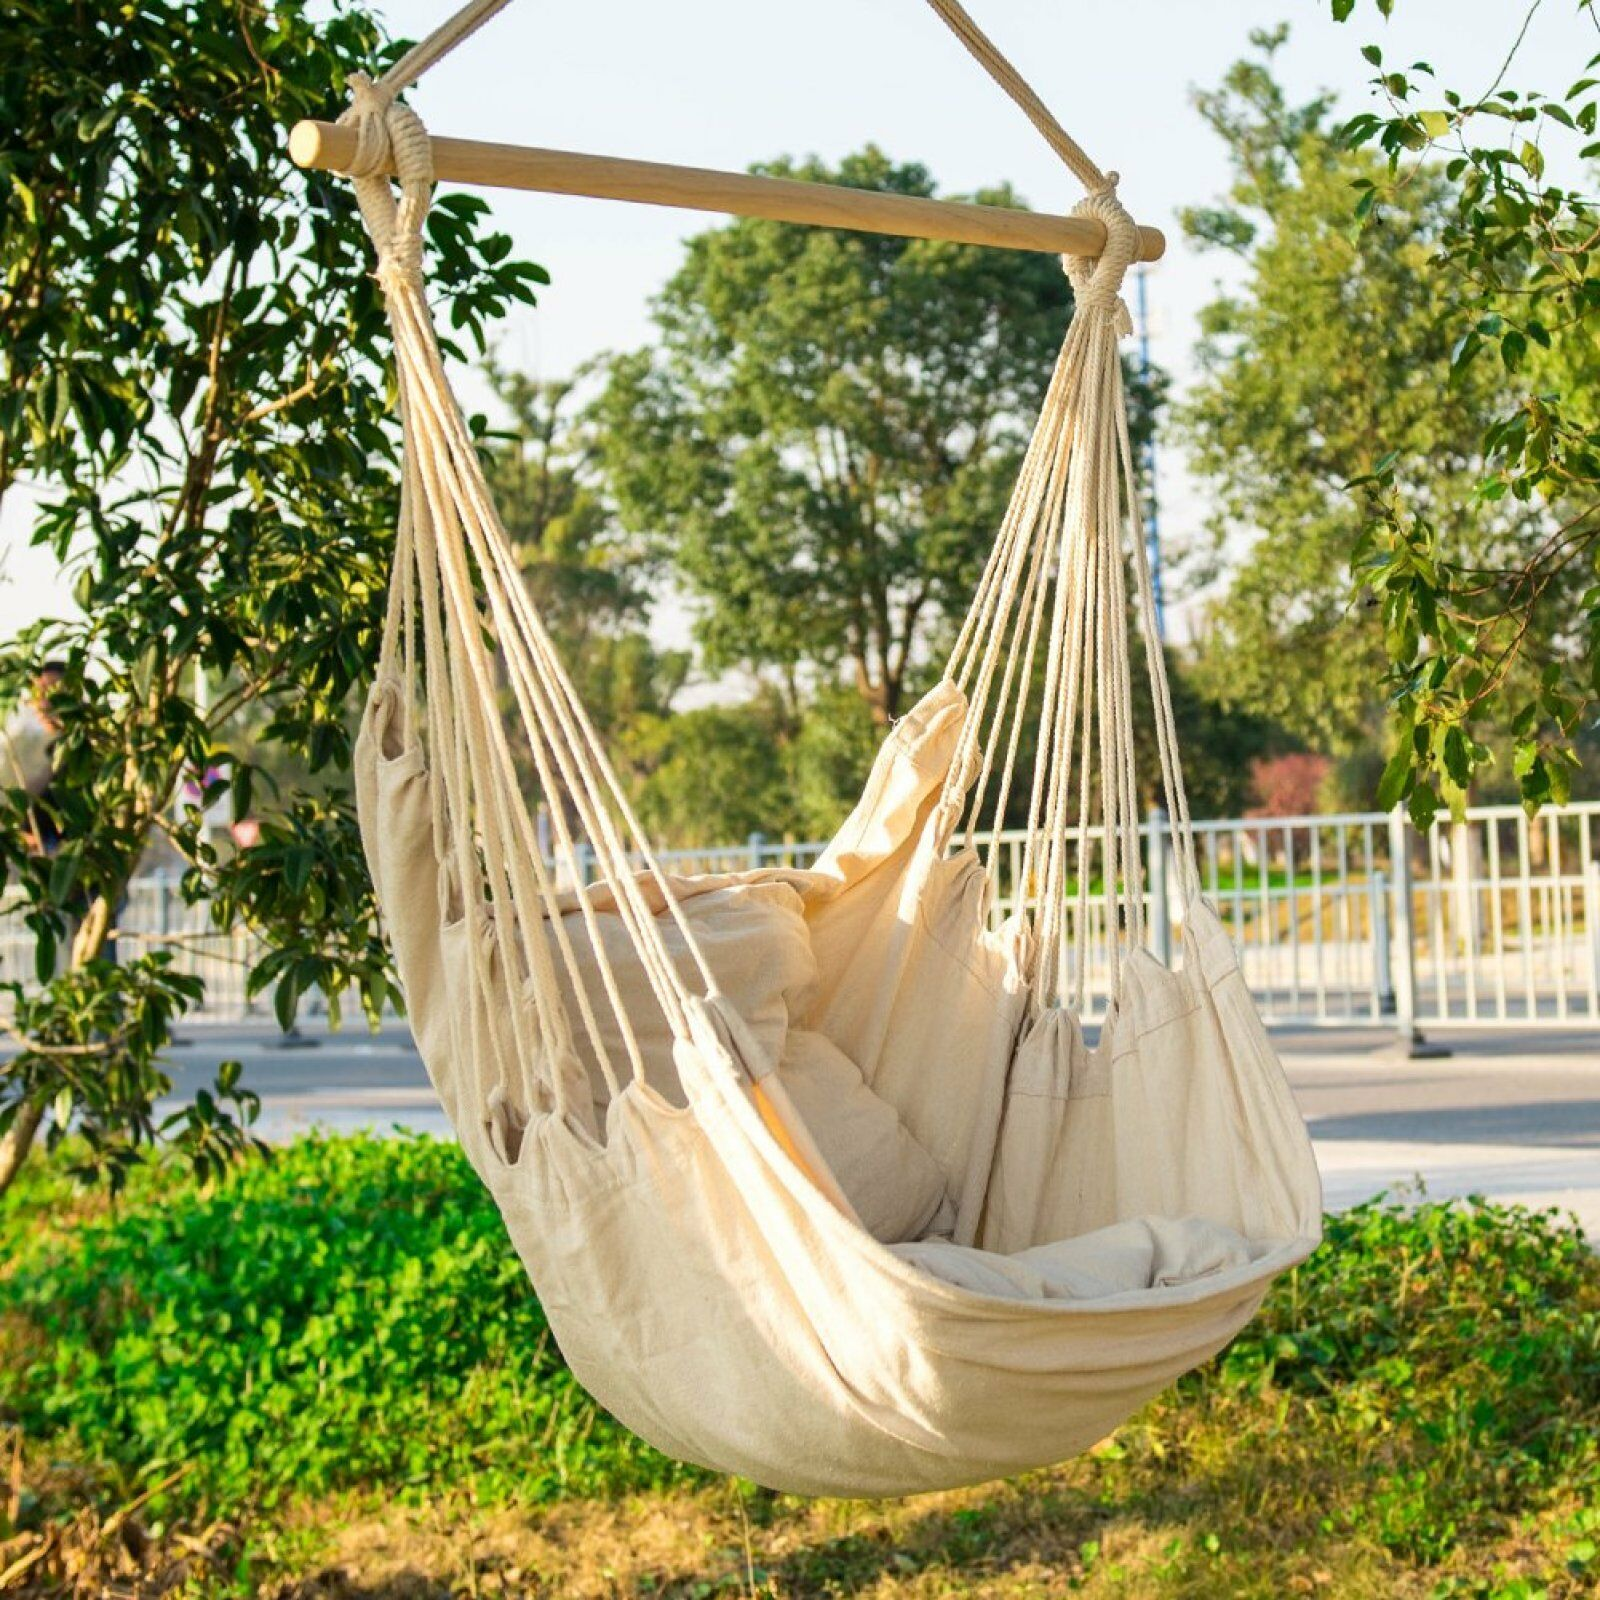 Details About Hanging Hammock Chair Swing Seat Relaxing Porch Bed Lazy Afternoon Outdoor Bed